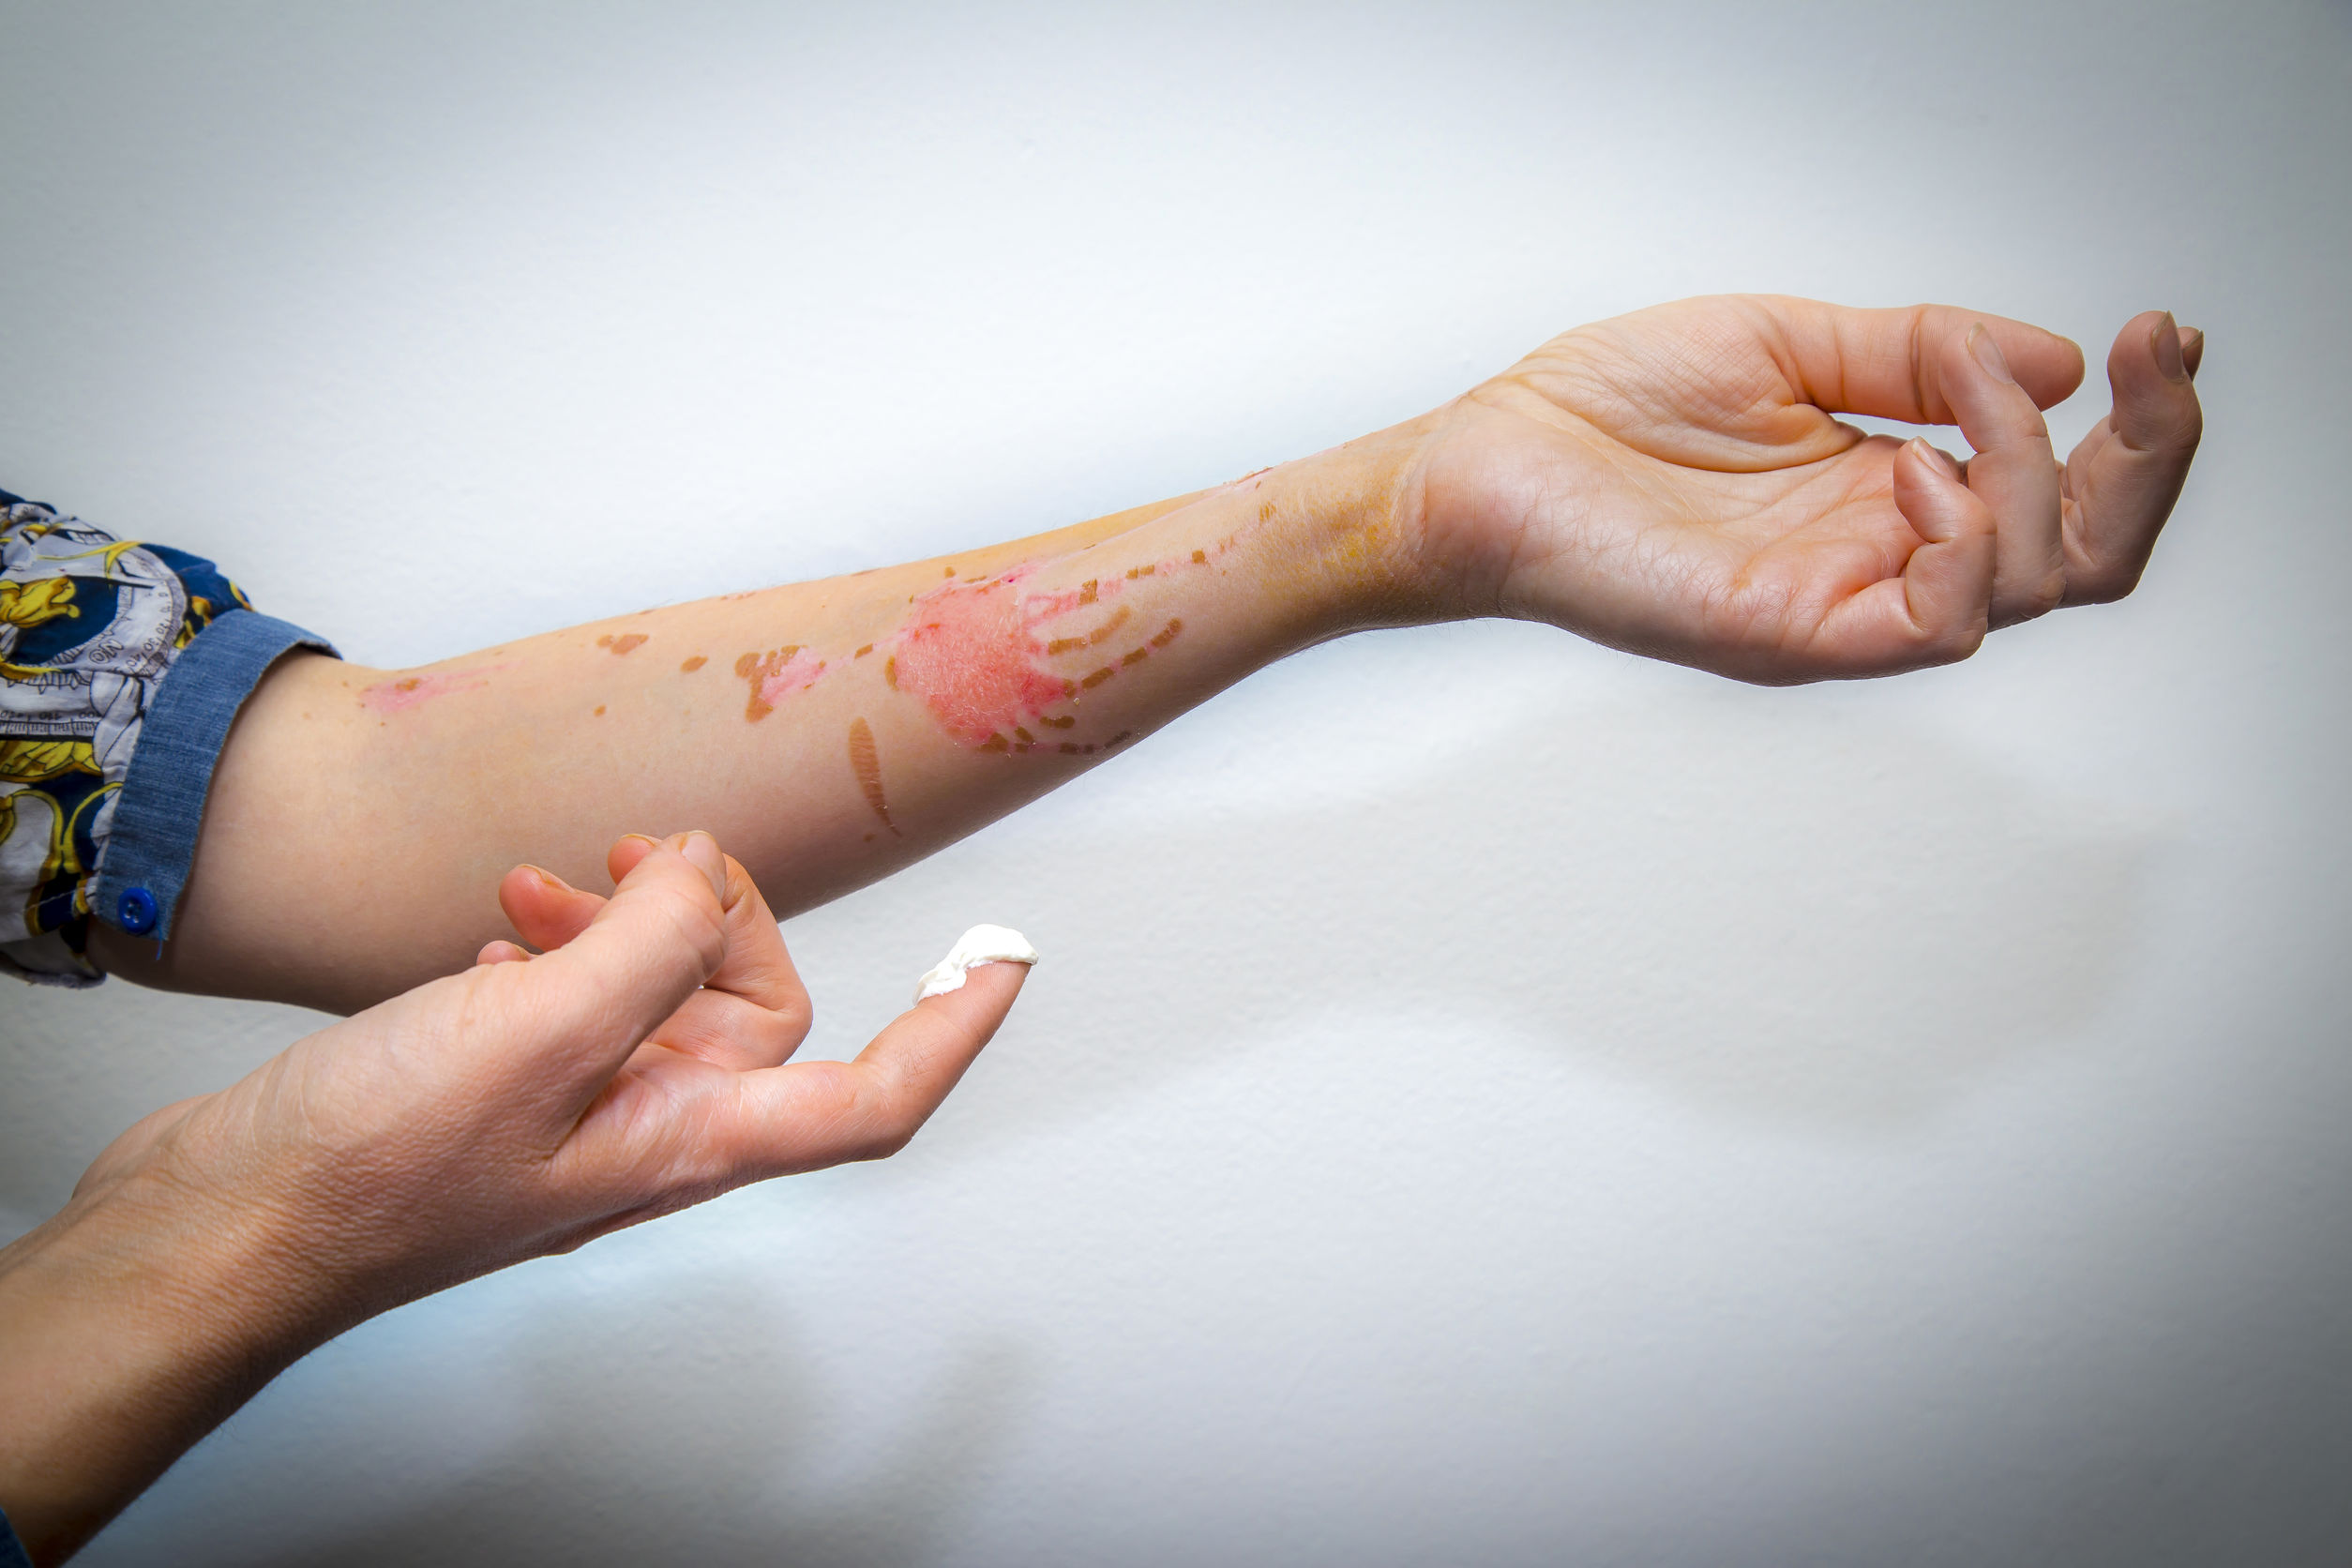 Do You Have Burn Injuries?